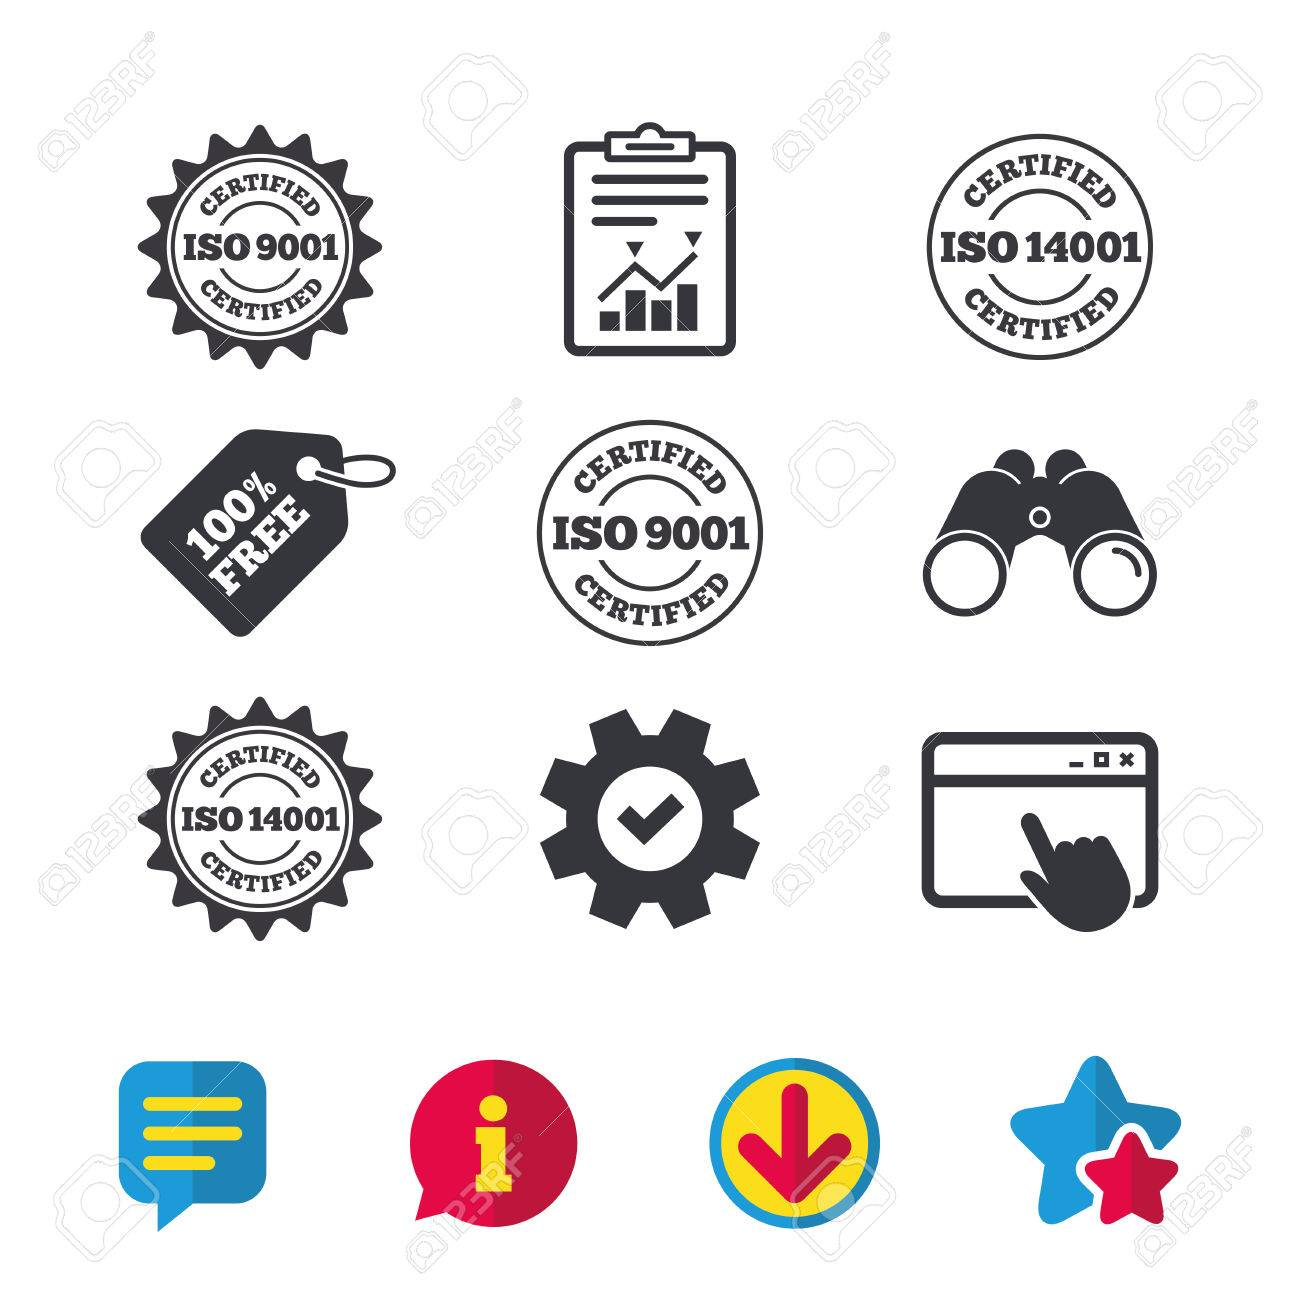 Iso 9001 And 14001 Certified Icons Certification Star Stamps